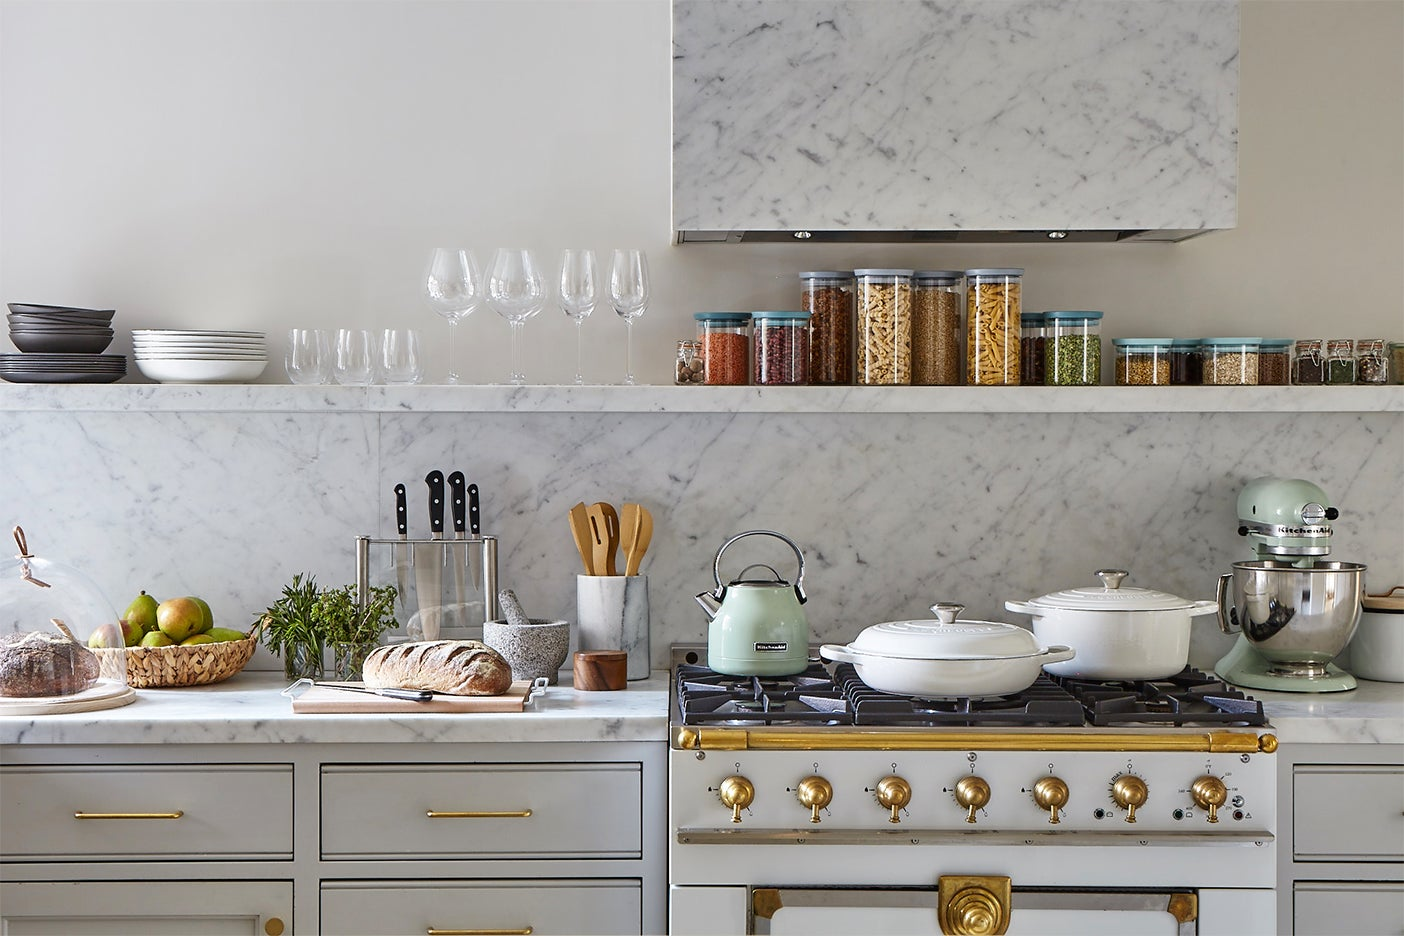 The French Appliance We've Spotted in (Almost) Every Celebrity Kitchen